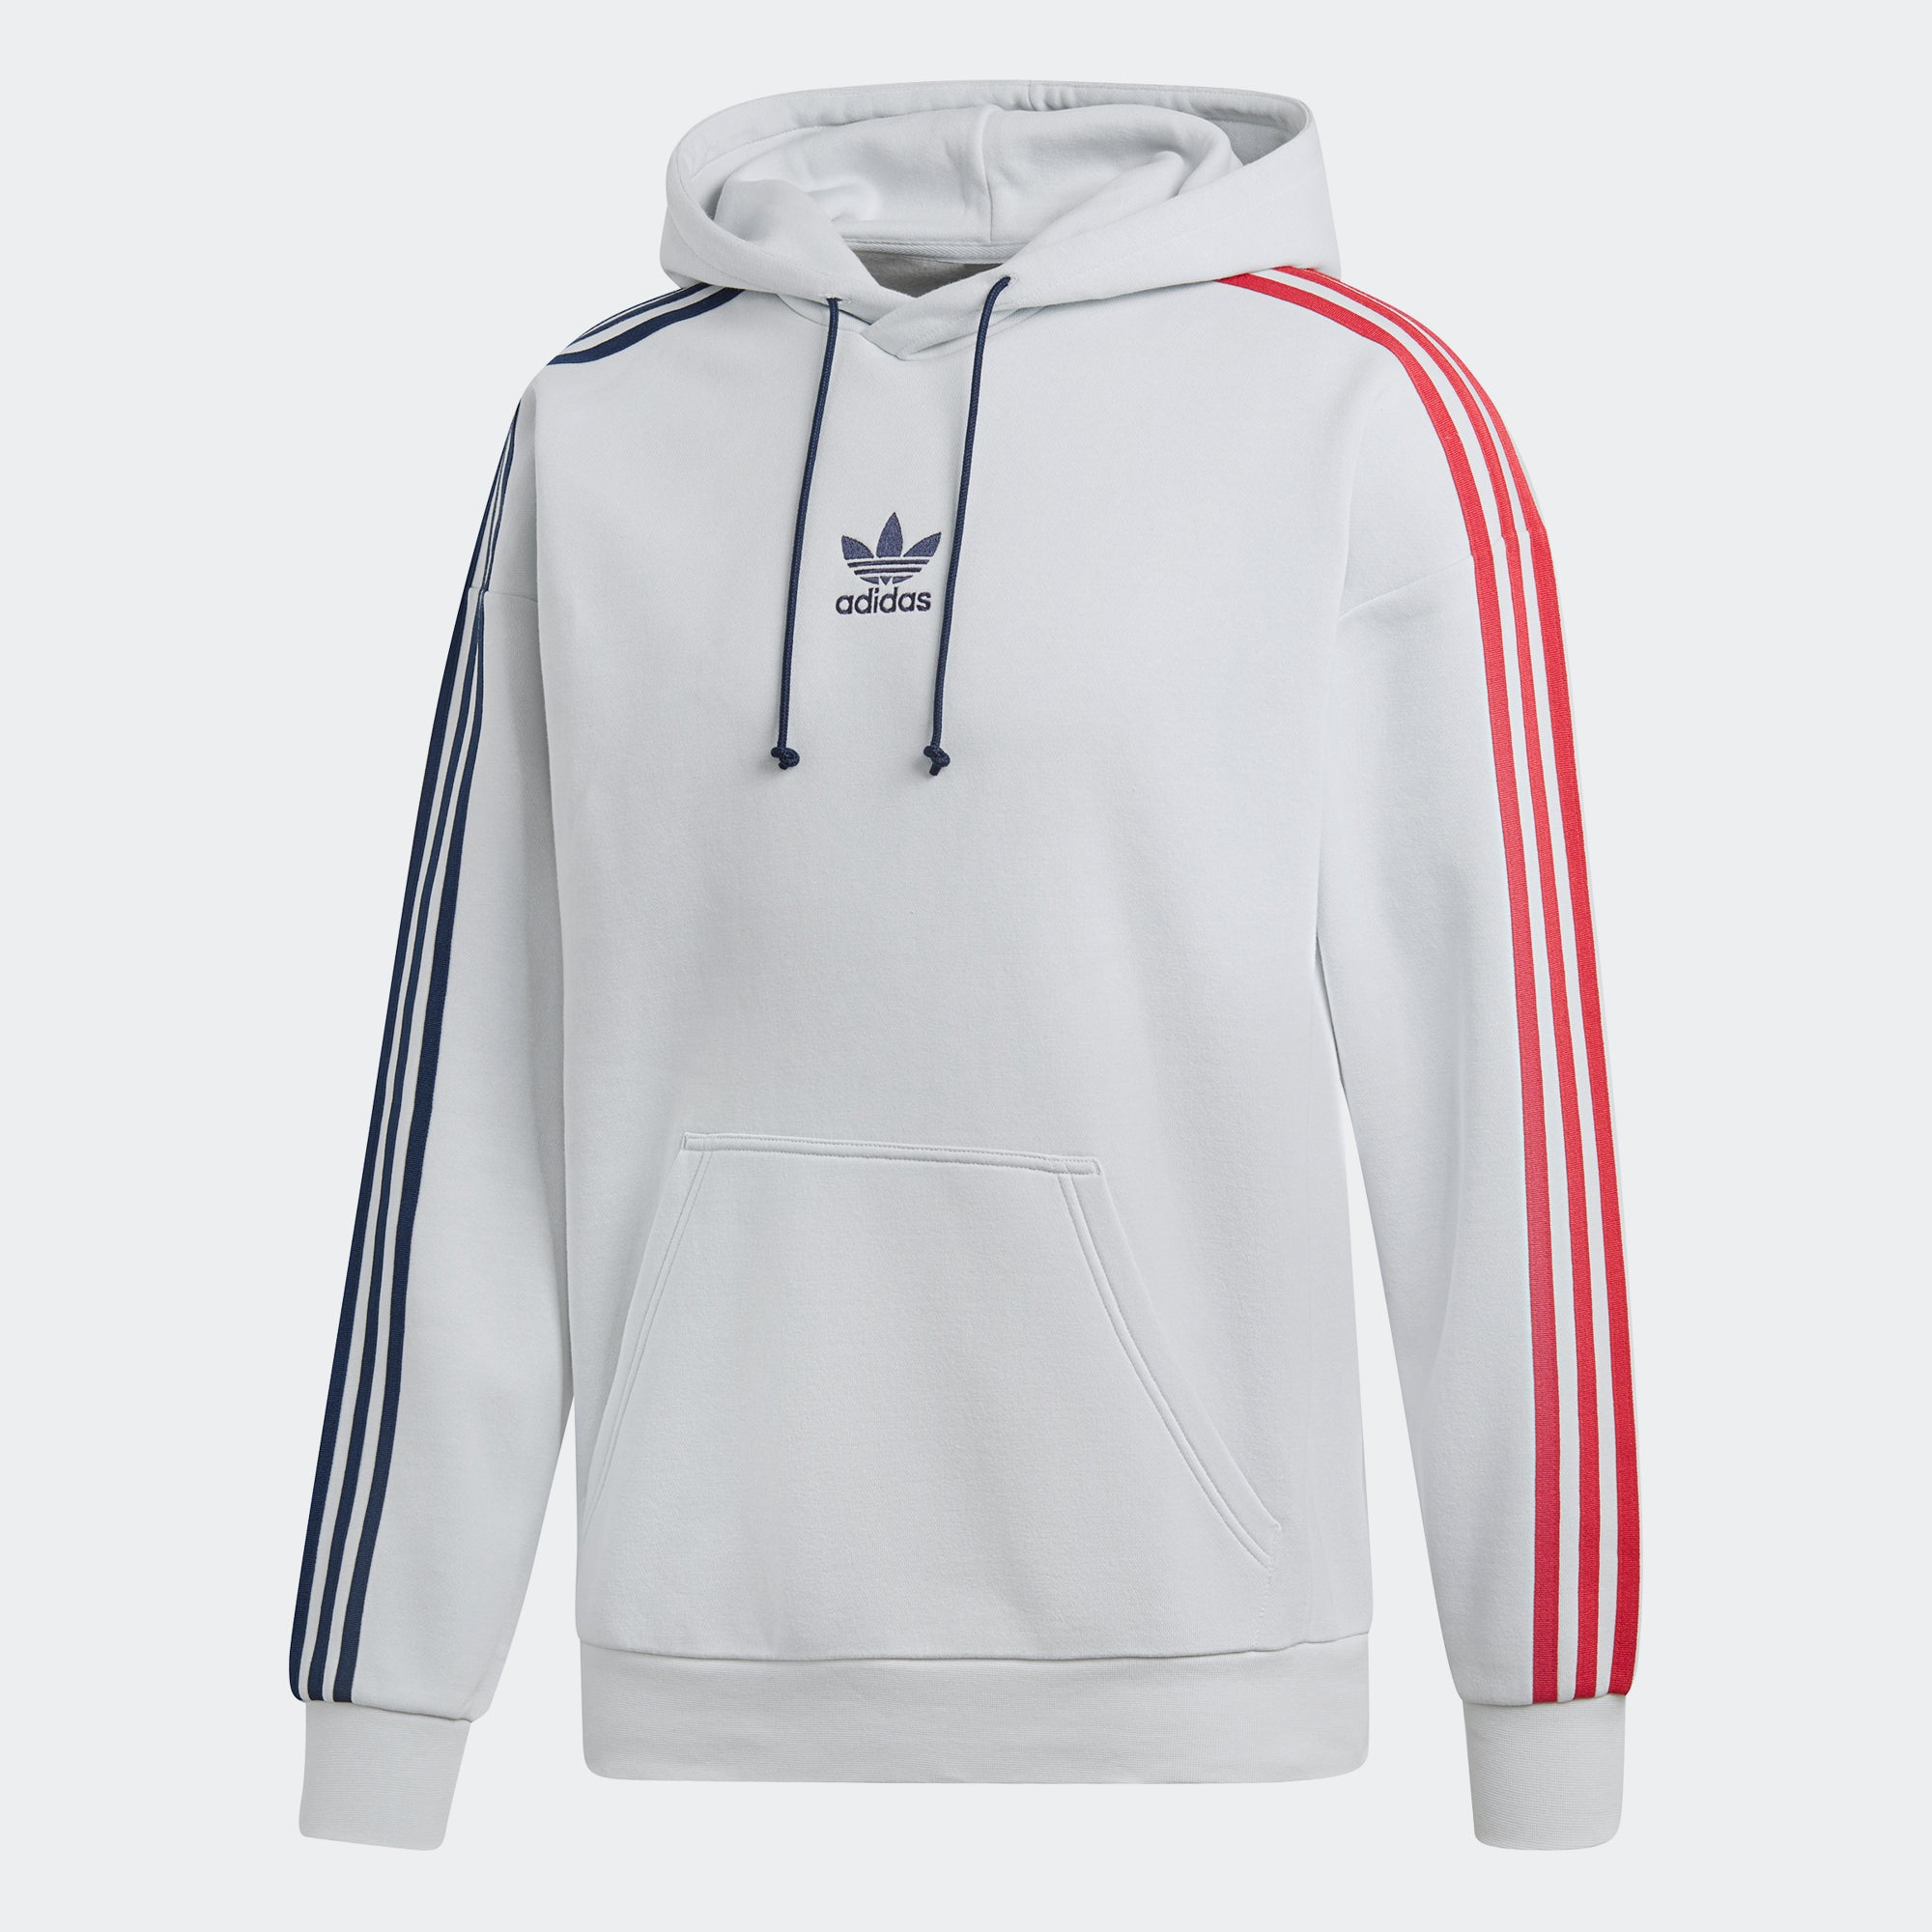 Men's adidas Originals 3-Stripes Hoodie Clear Grey - S / LIGHT GRAY